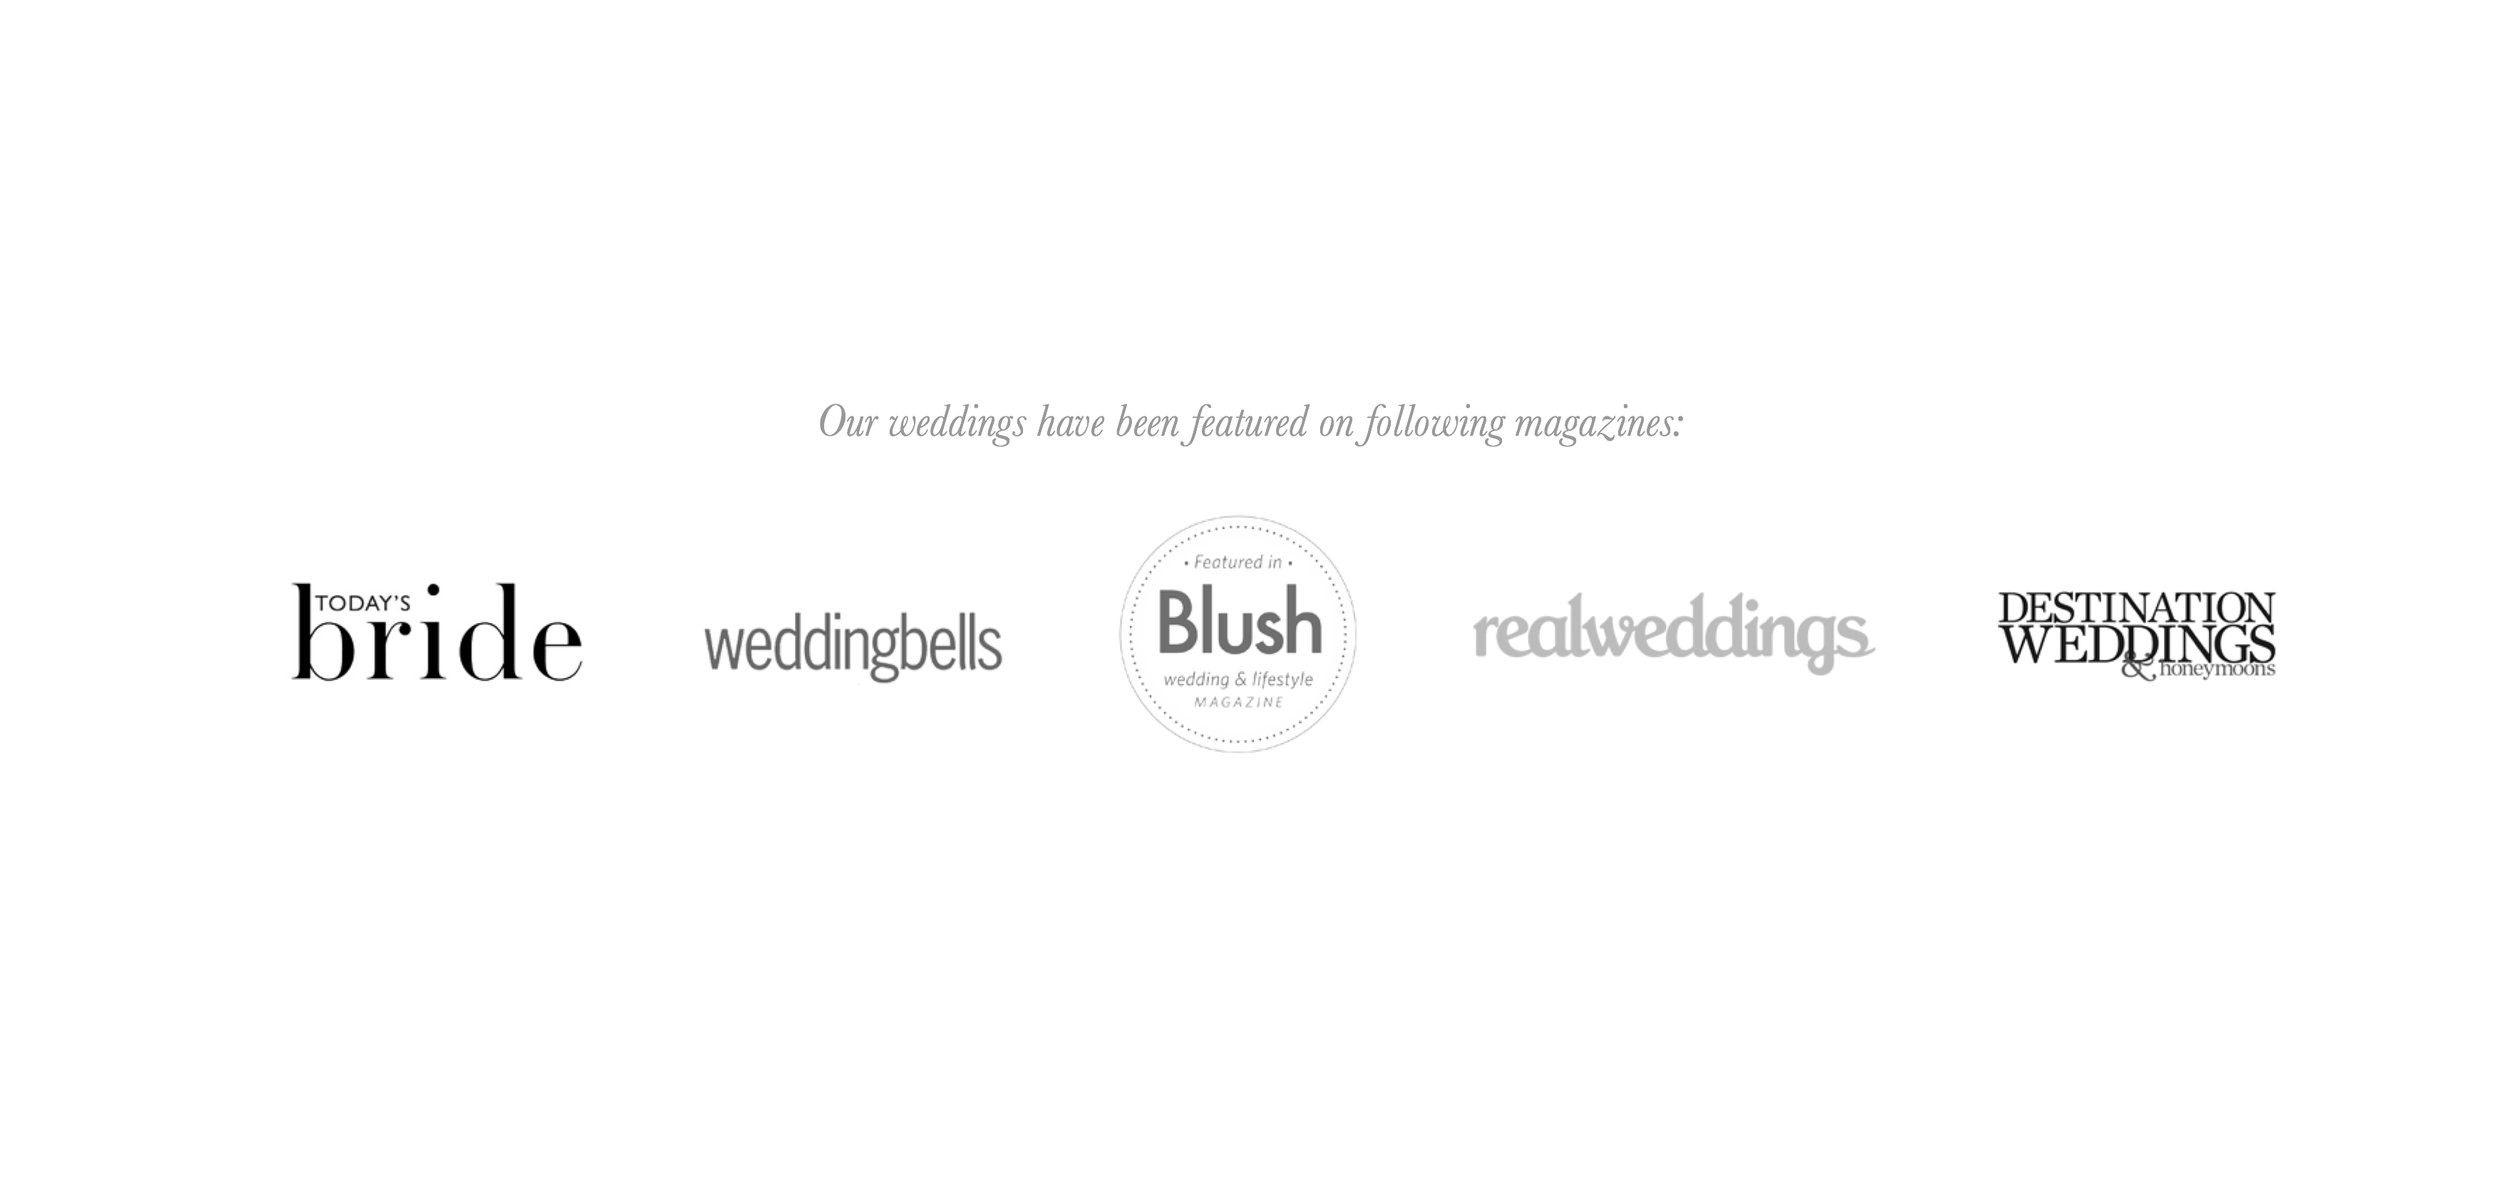 BeigeWeddings_Wedding_Collections12.jpg